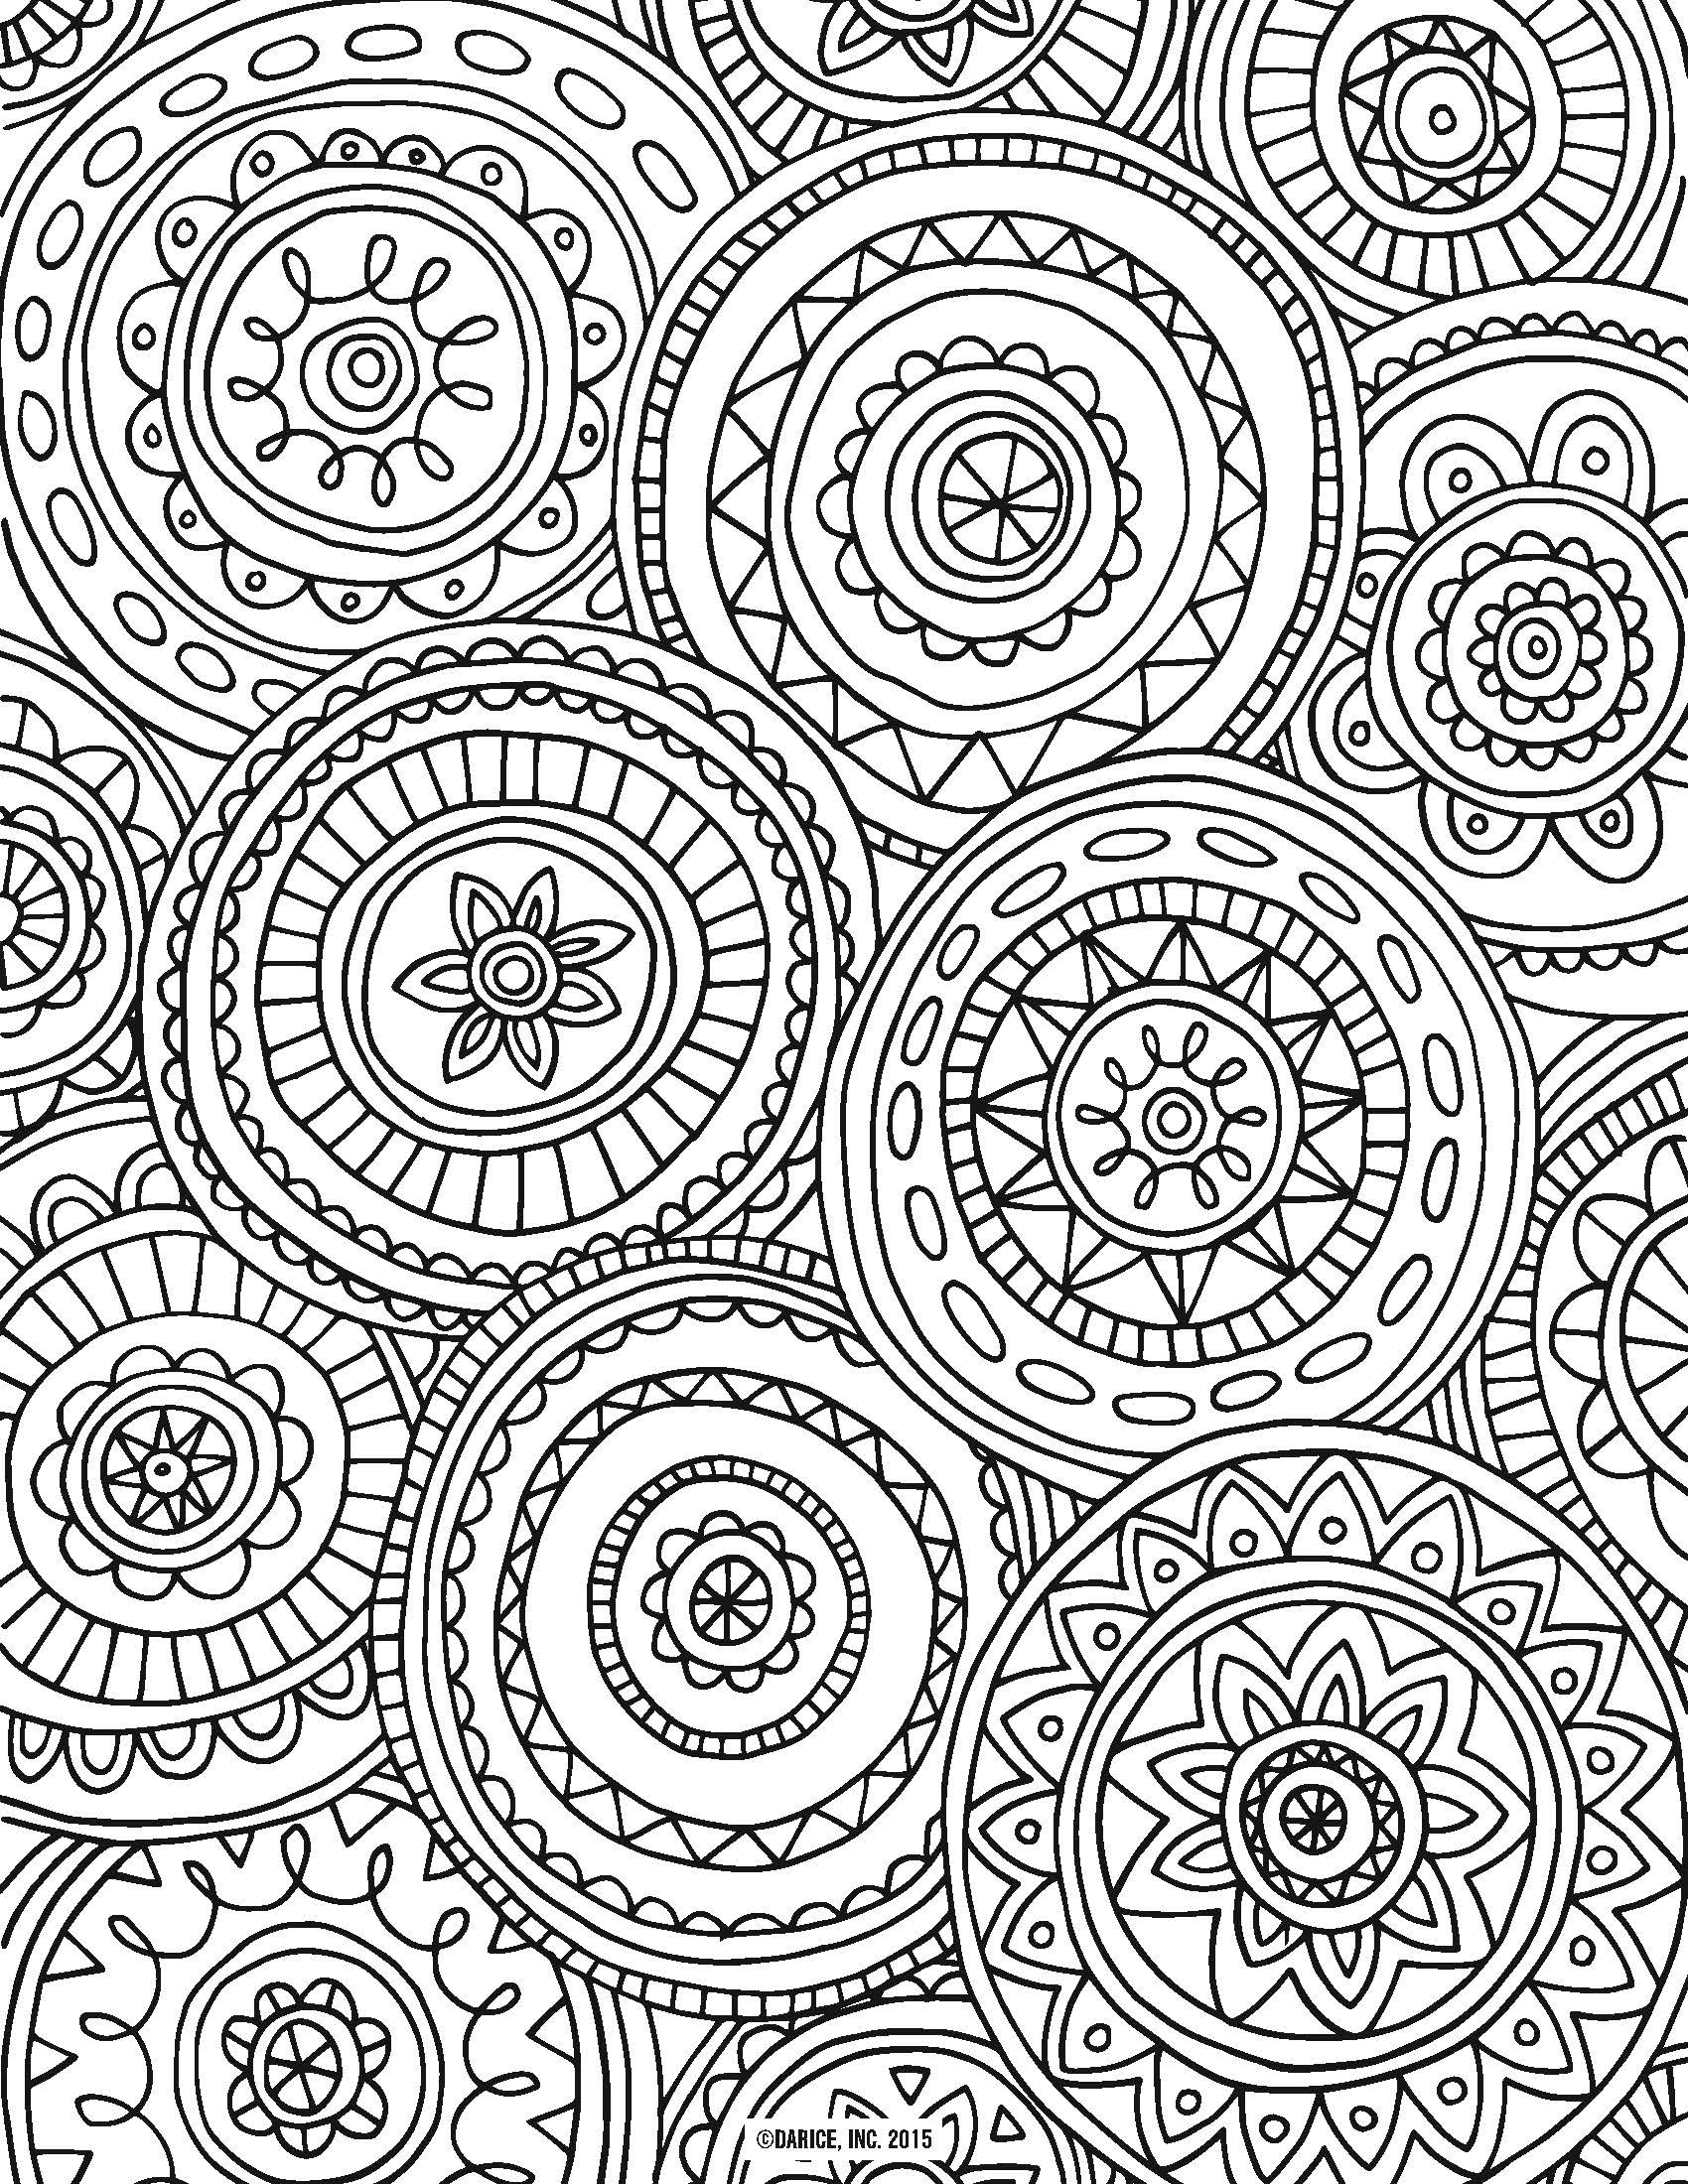 9 Free Printable Adult Coloring Pages | Pat Catan's Blog - Free Printable Coloring Pages For Adults Only